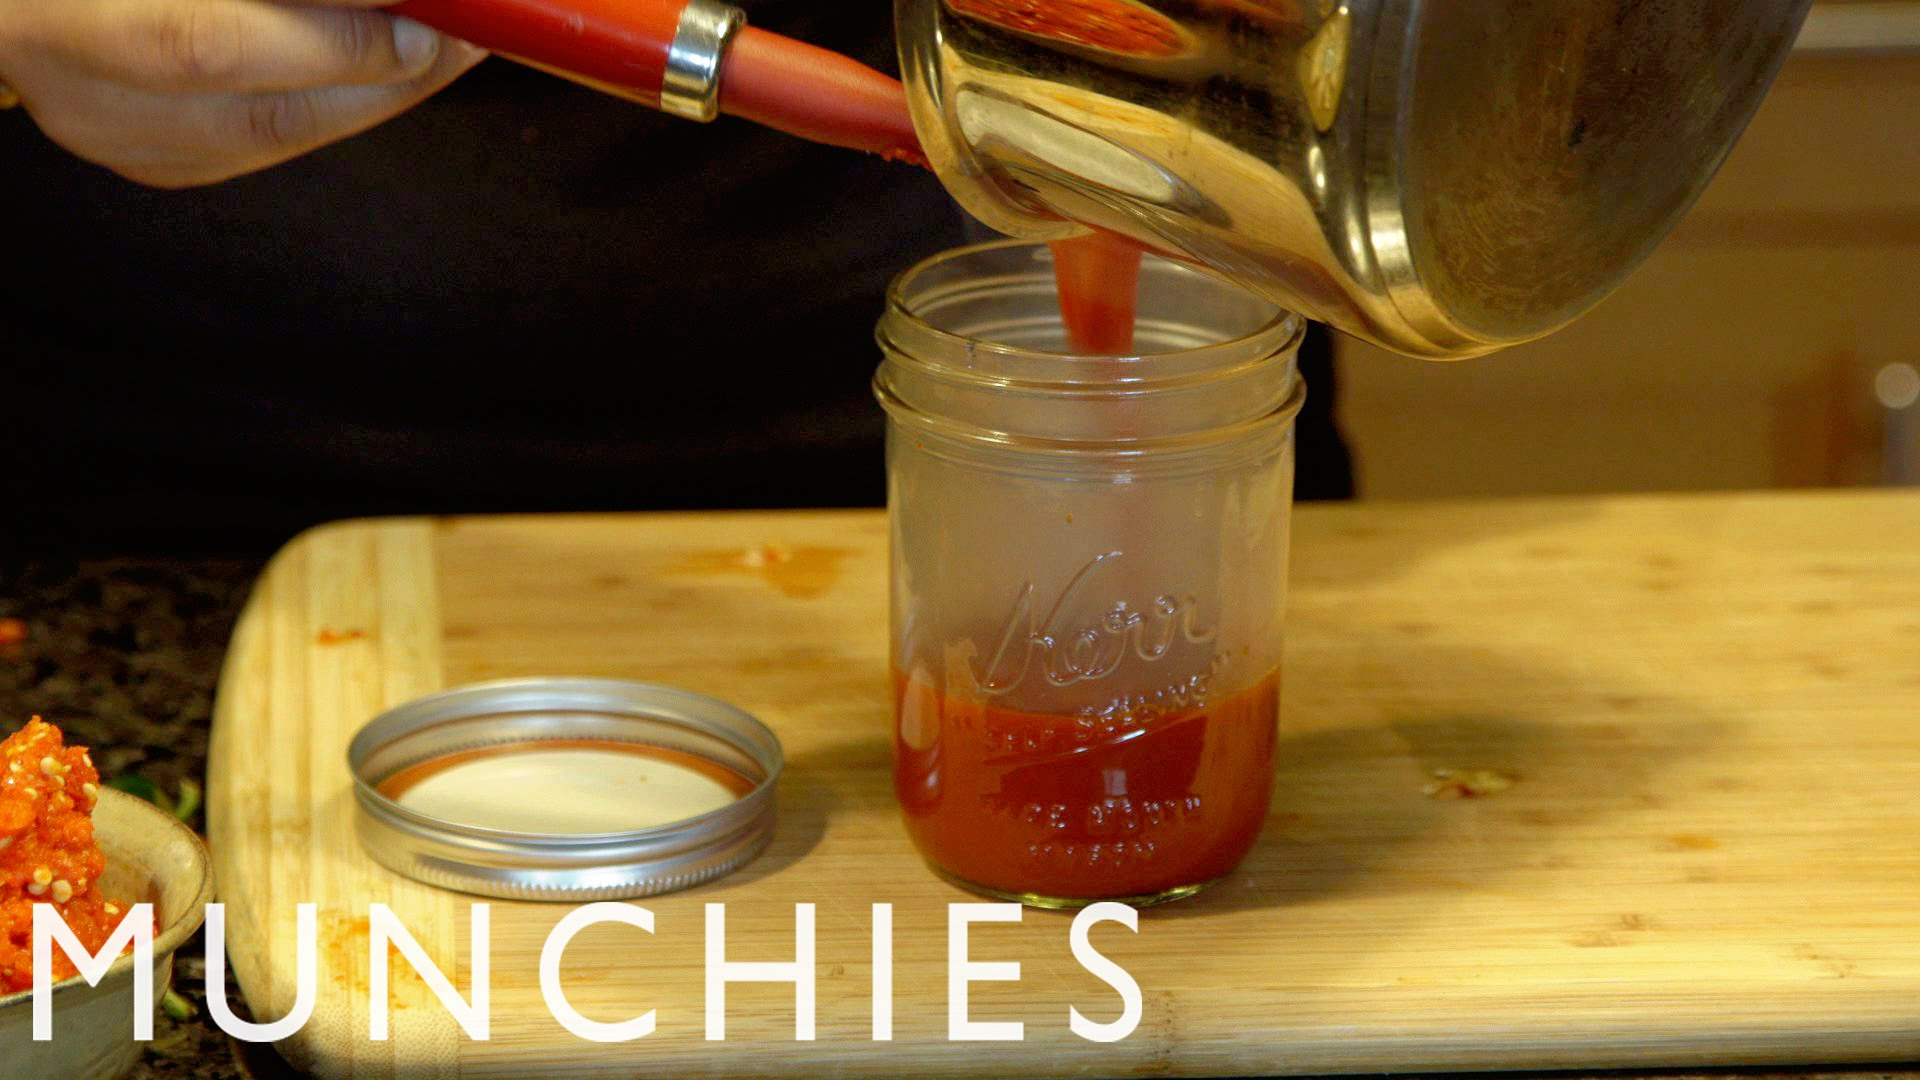 How to Make a Fermented Sriracha Sauce at Home